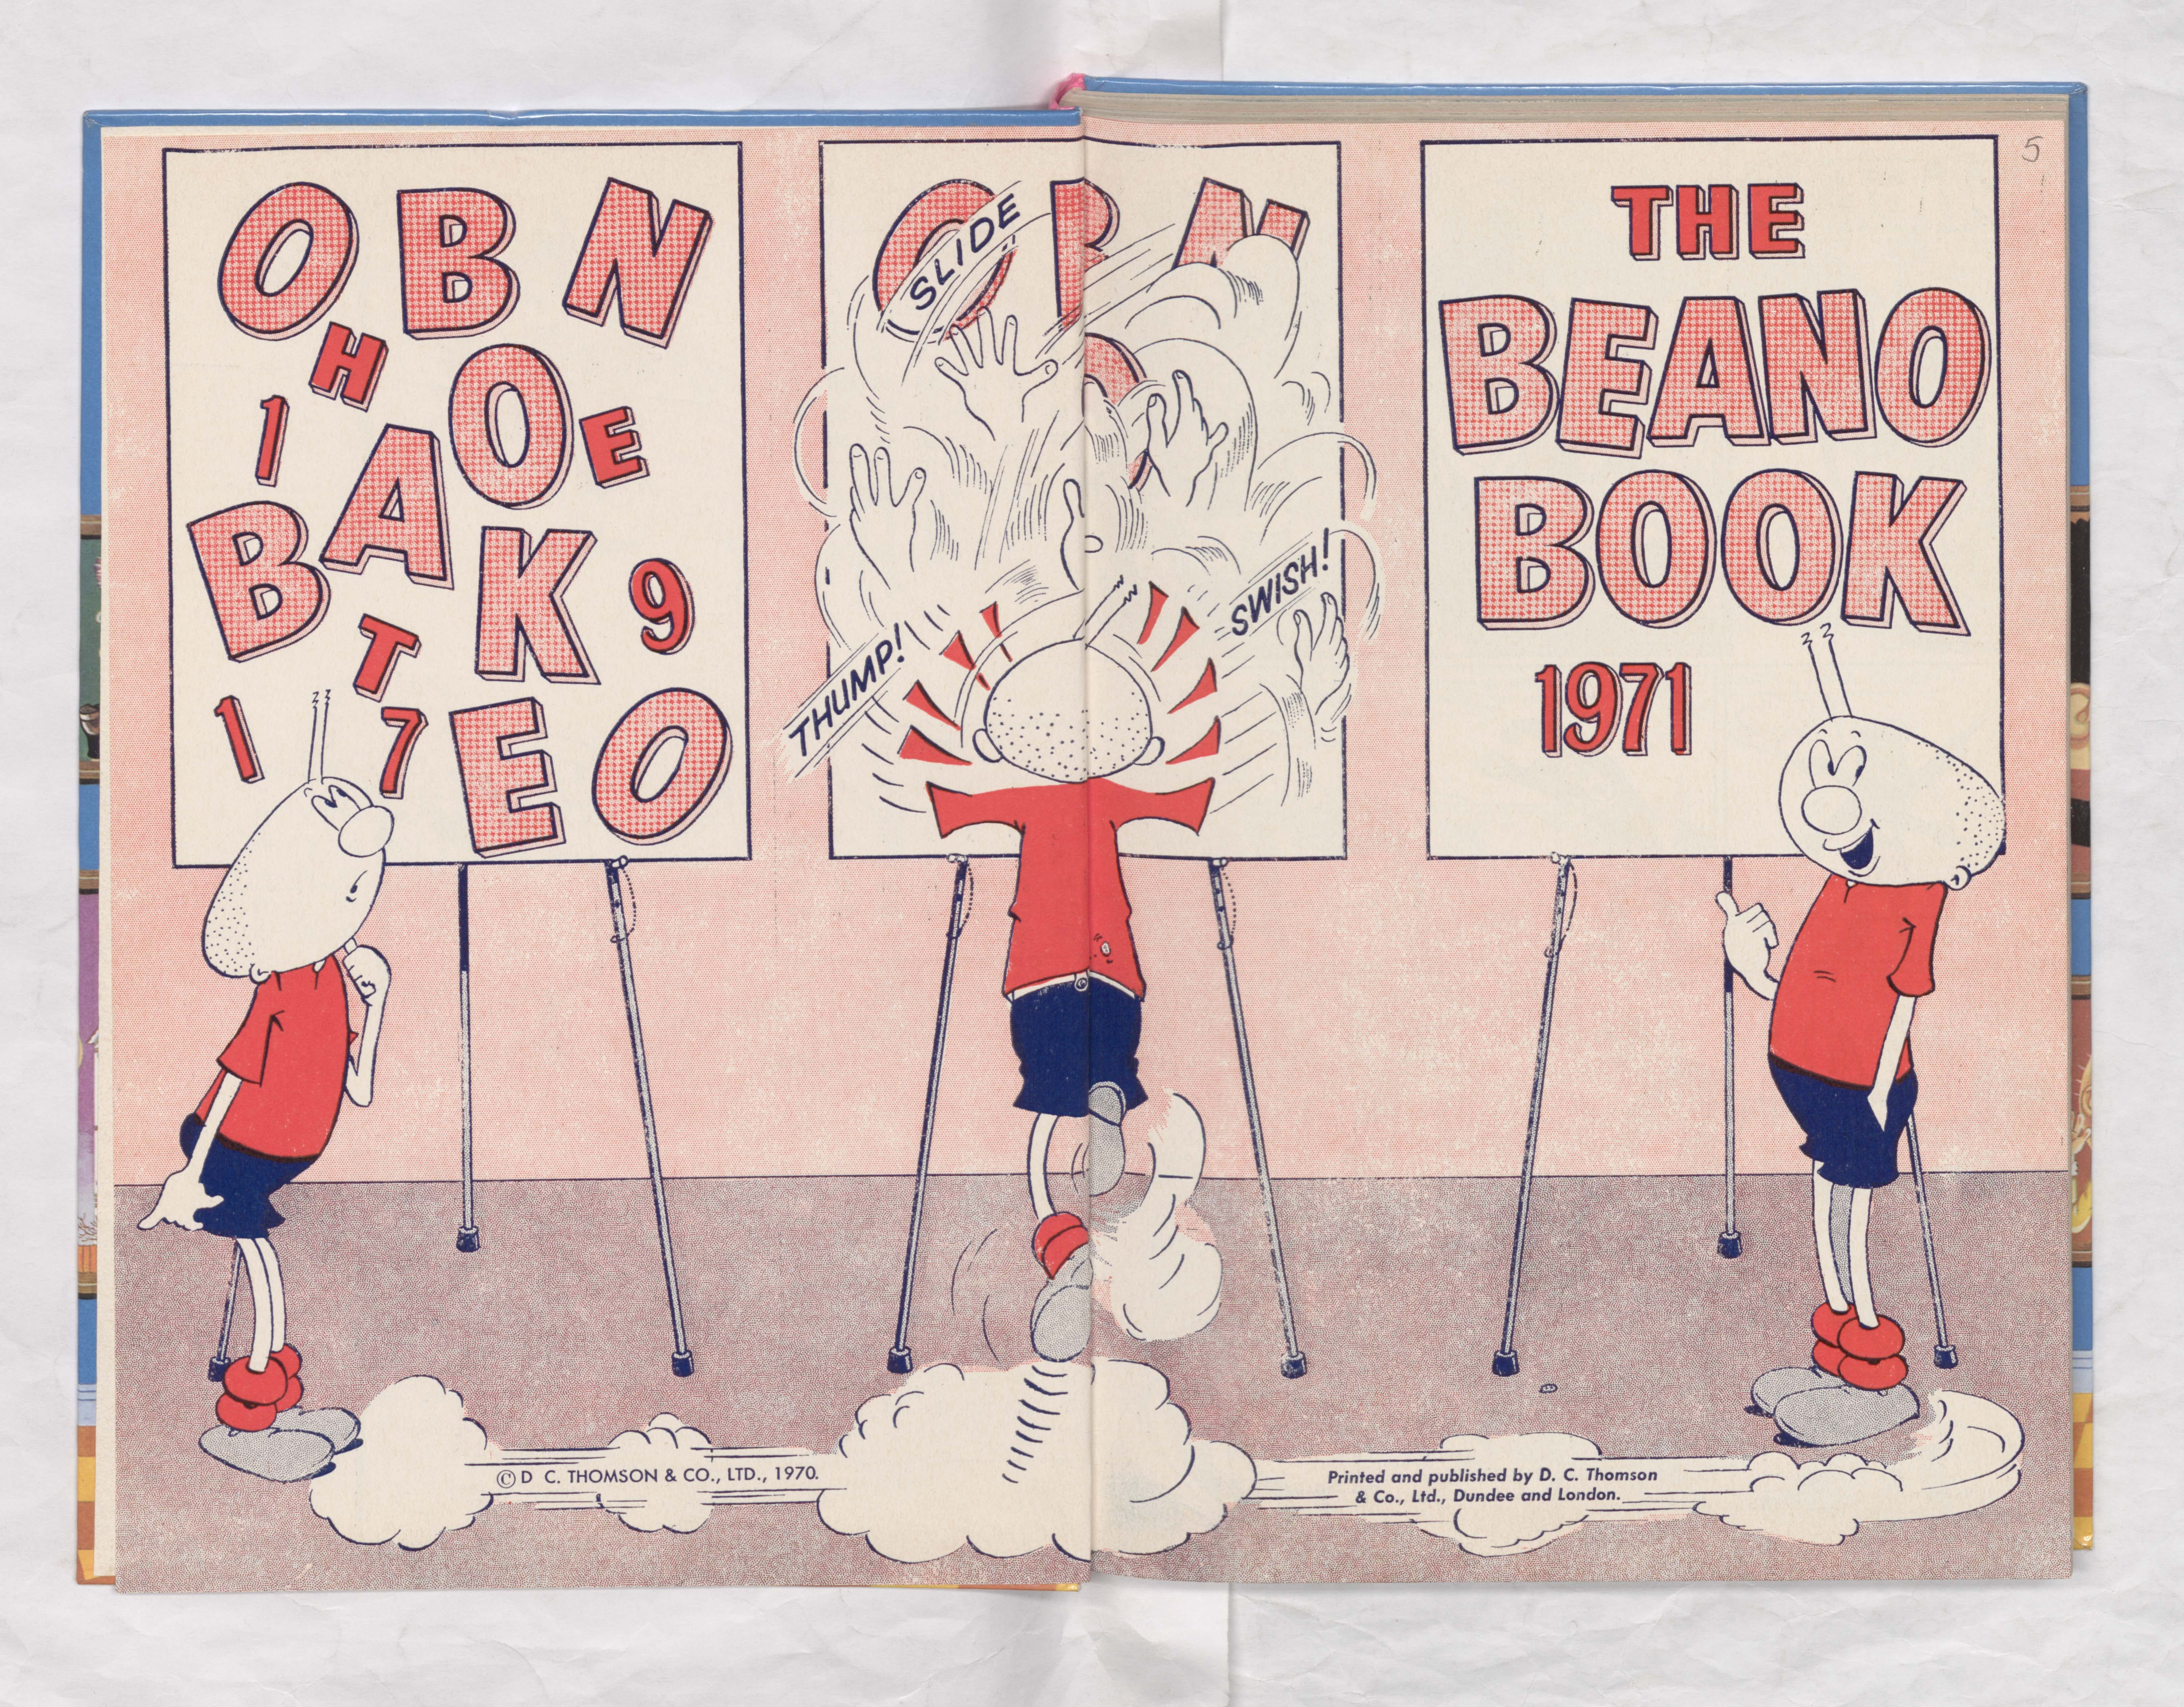 Beano Book 1971 - Billy Whizzspeeds a conundrum